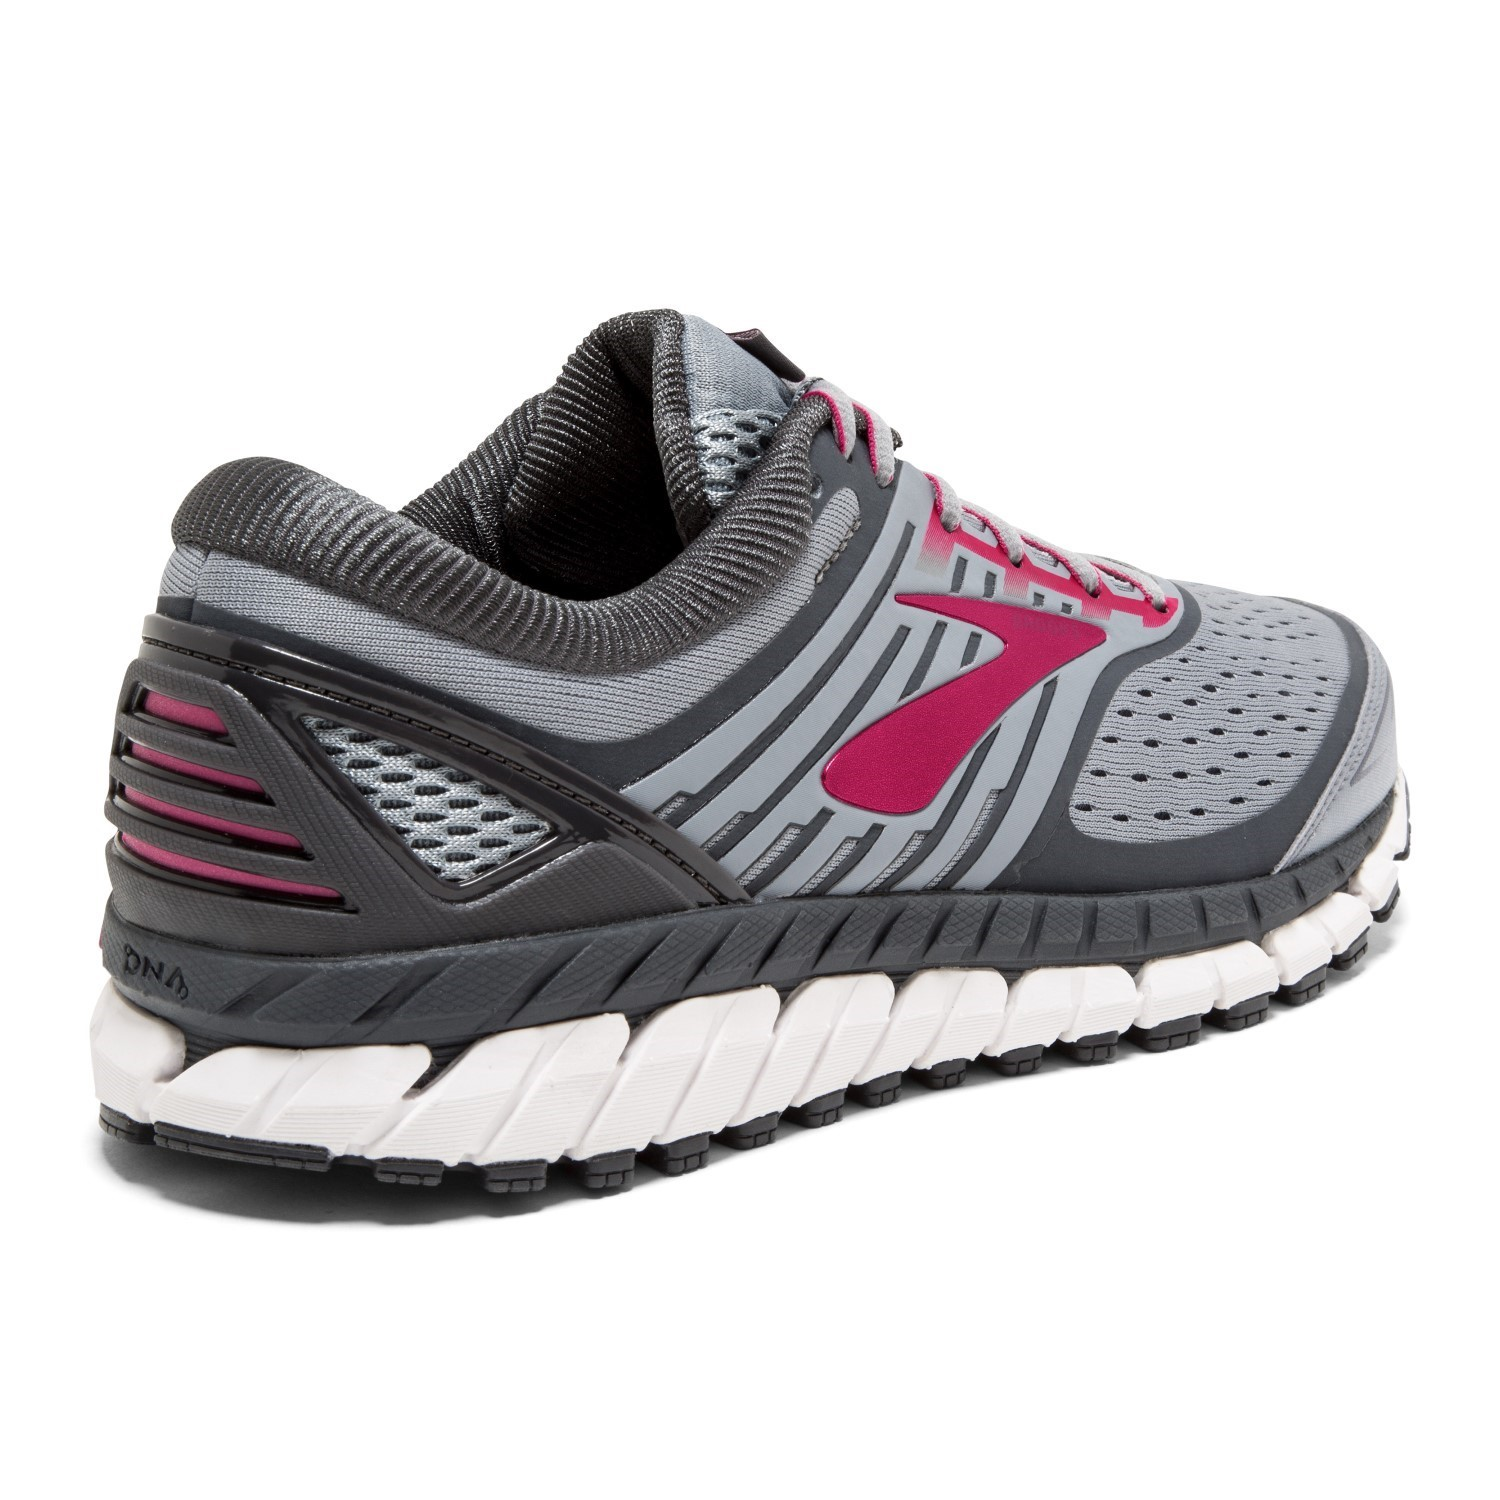 daad1045e0c Brooks Ariel 18 - Womens Running Shoes - Grey Pink